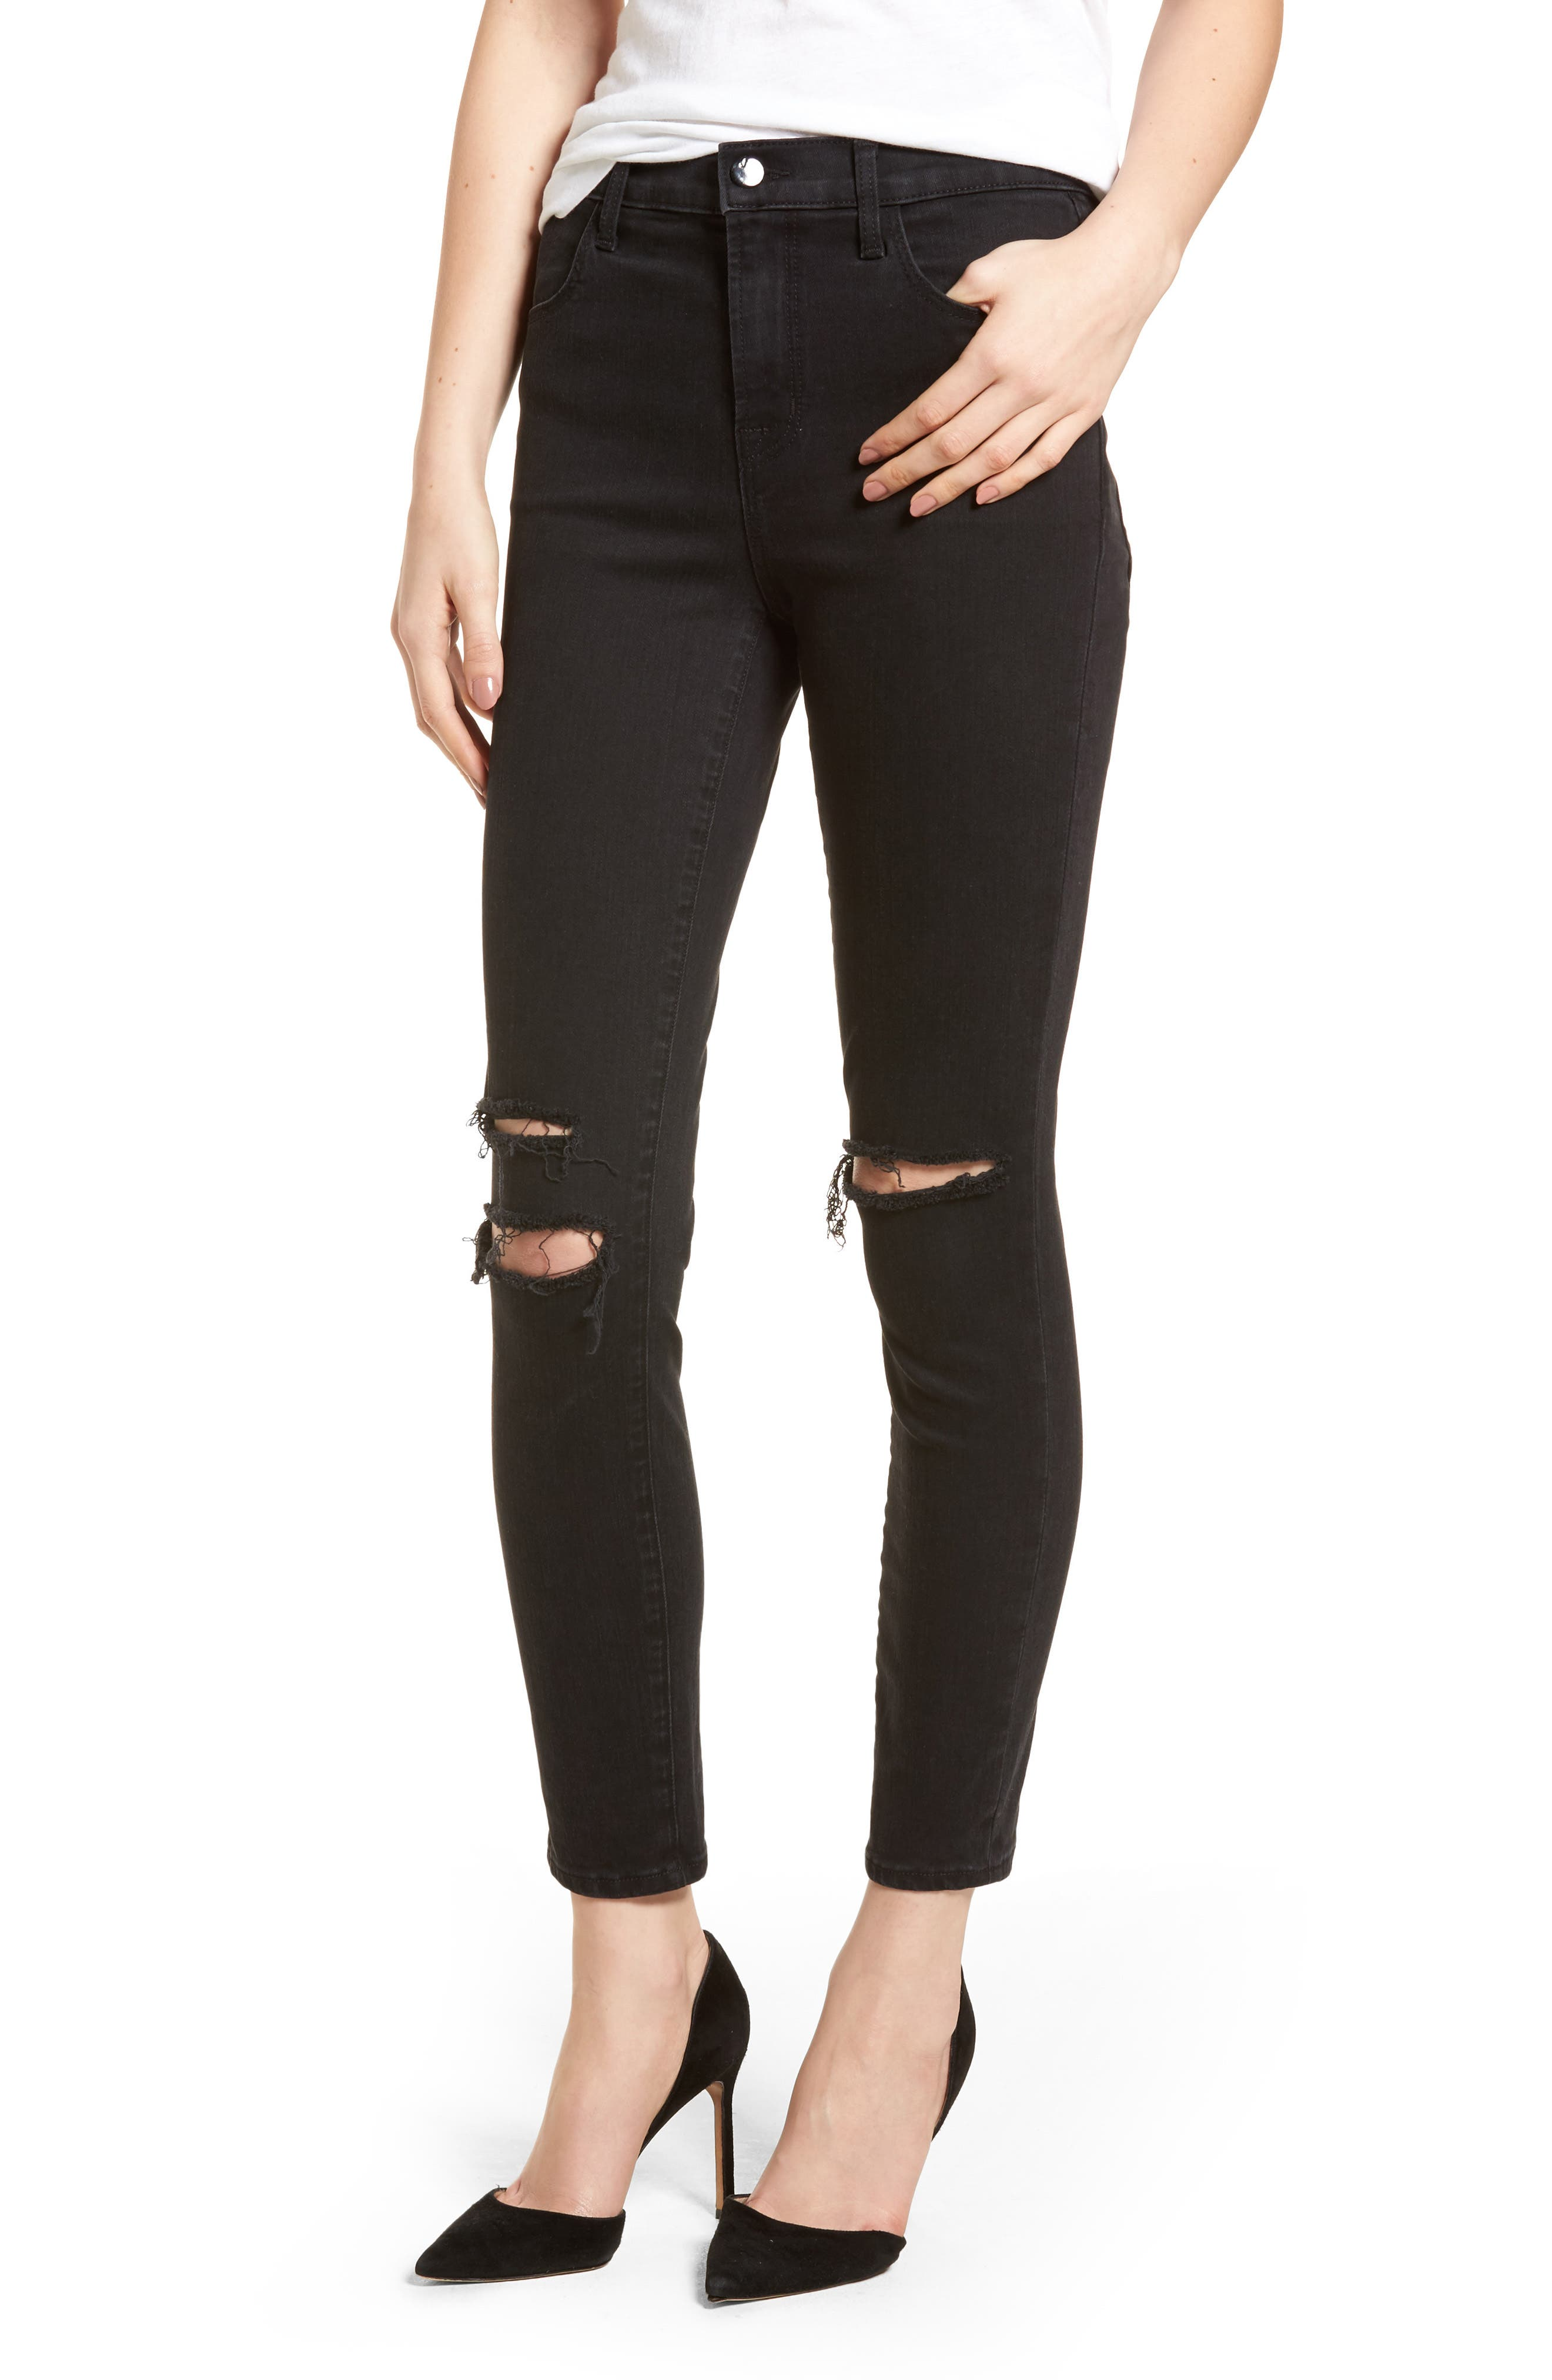 Main Image - J Brand Alana High Waist Ankle Skinny Jeans (Black Mercy) (Nordstrom Exclusive)